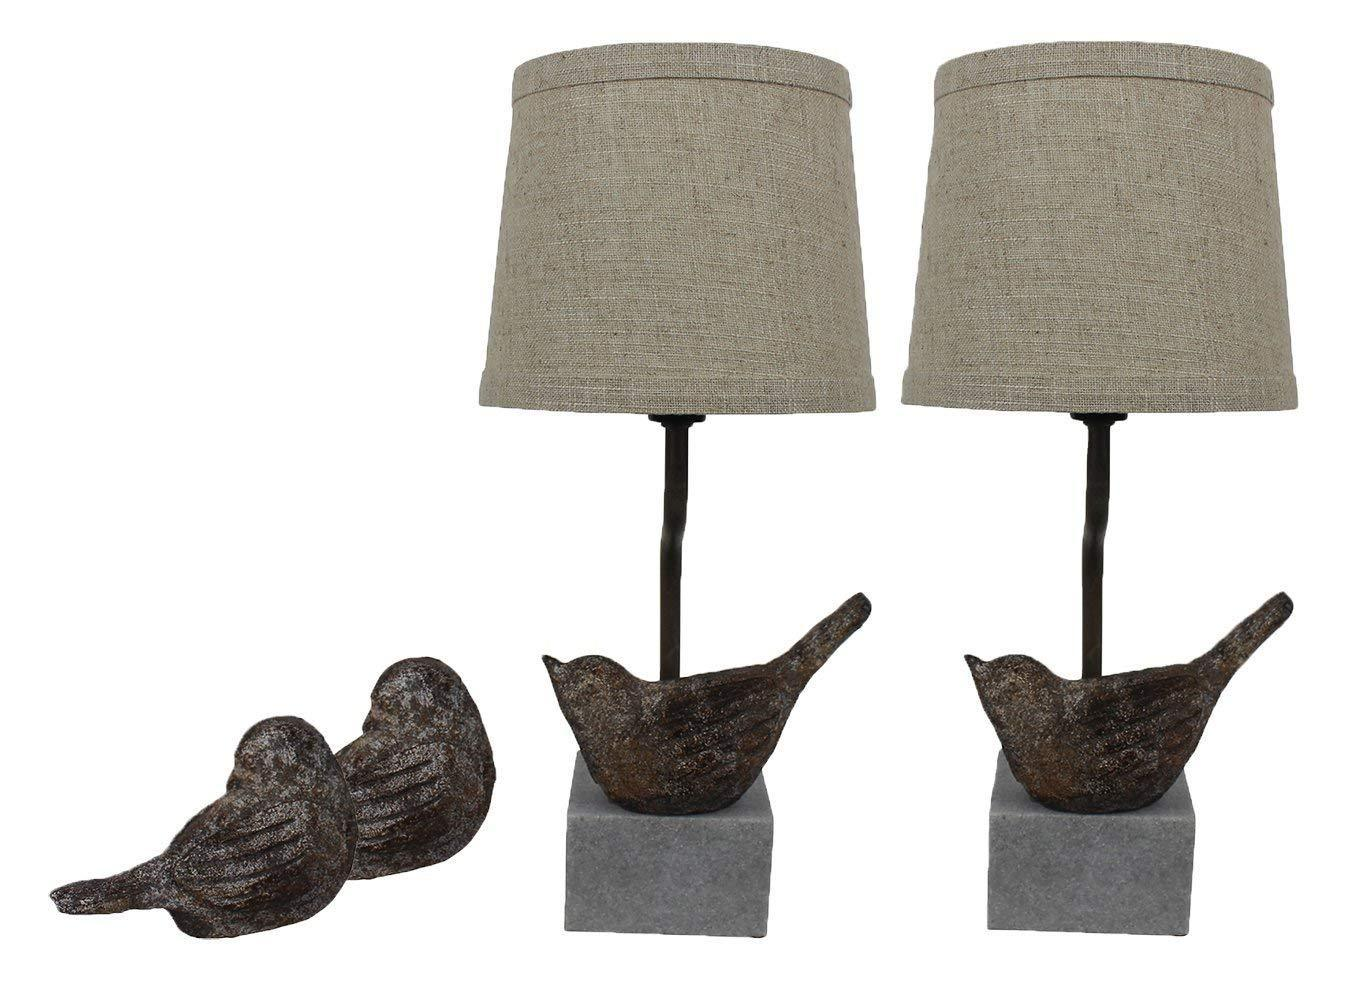 urbanest set bird mini accent lamps with shades within lamp ideas table narrow farmhouse treasure trove furniture garden chairs screw wooden legs long bar height antique folding